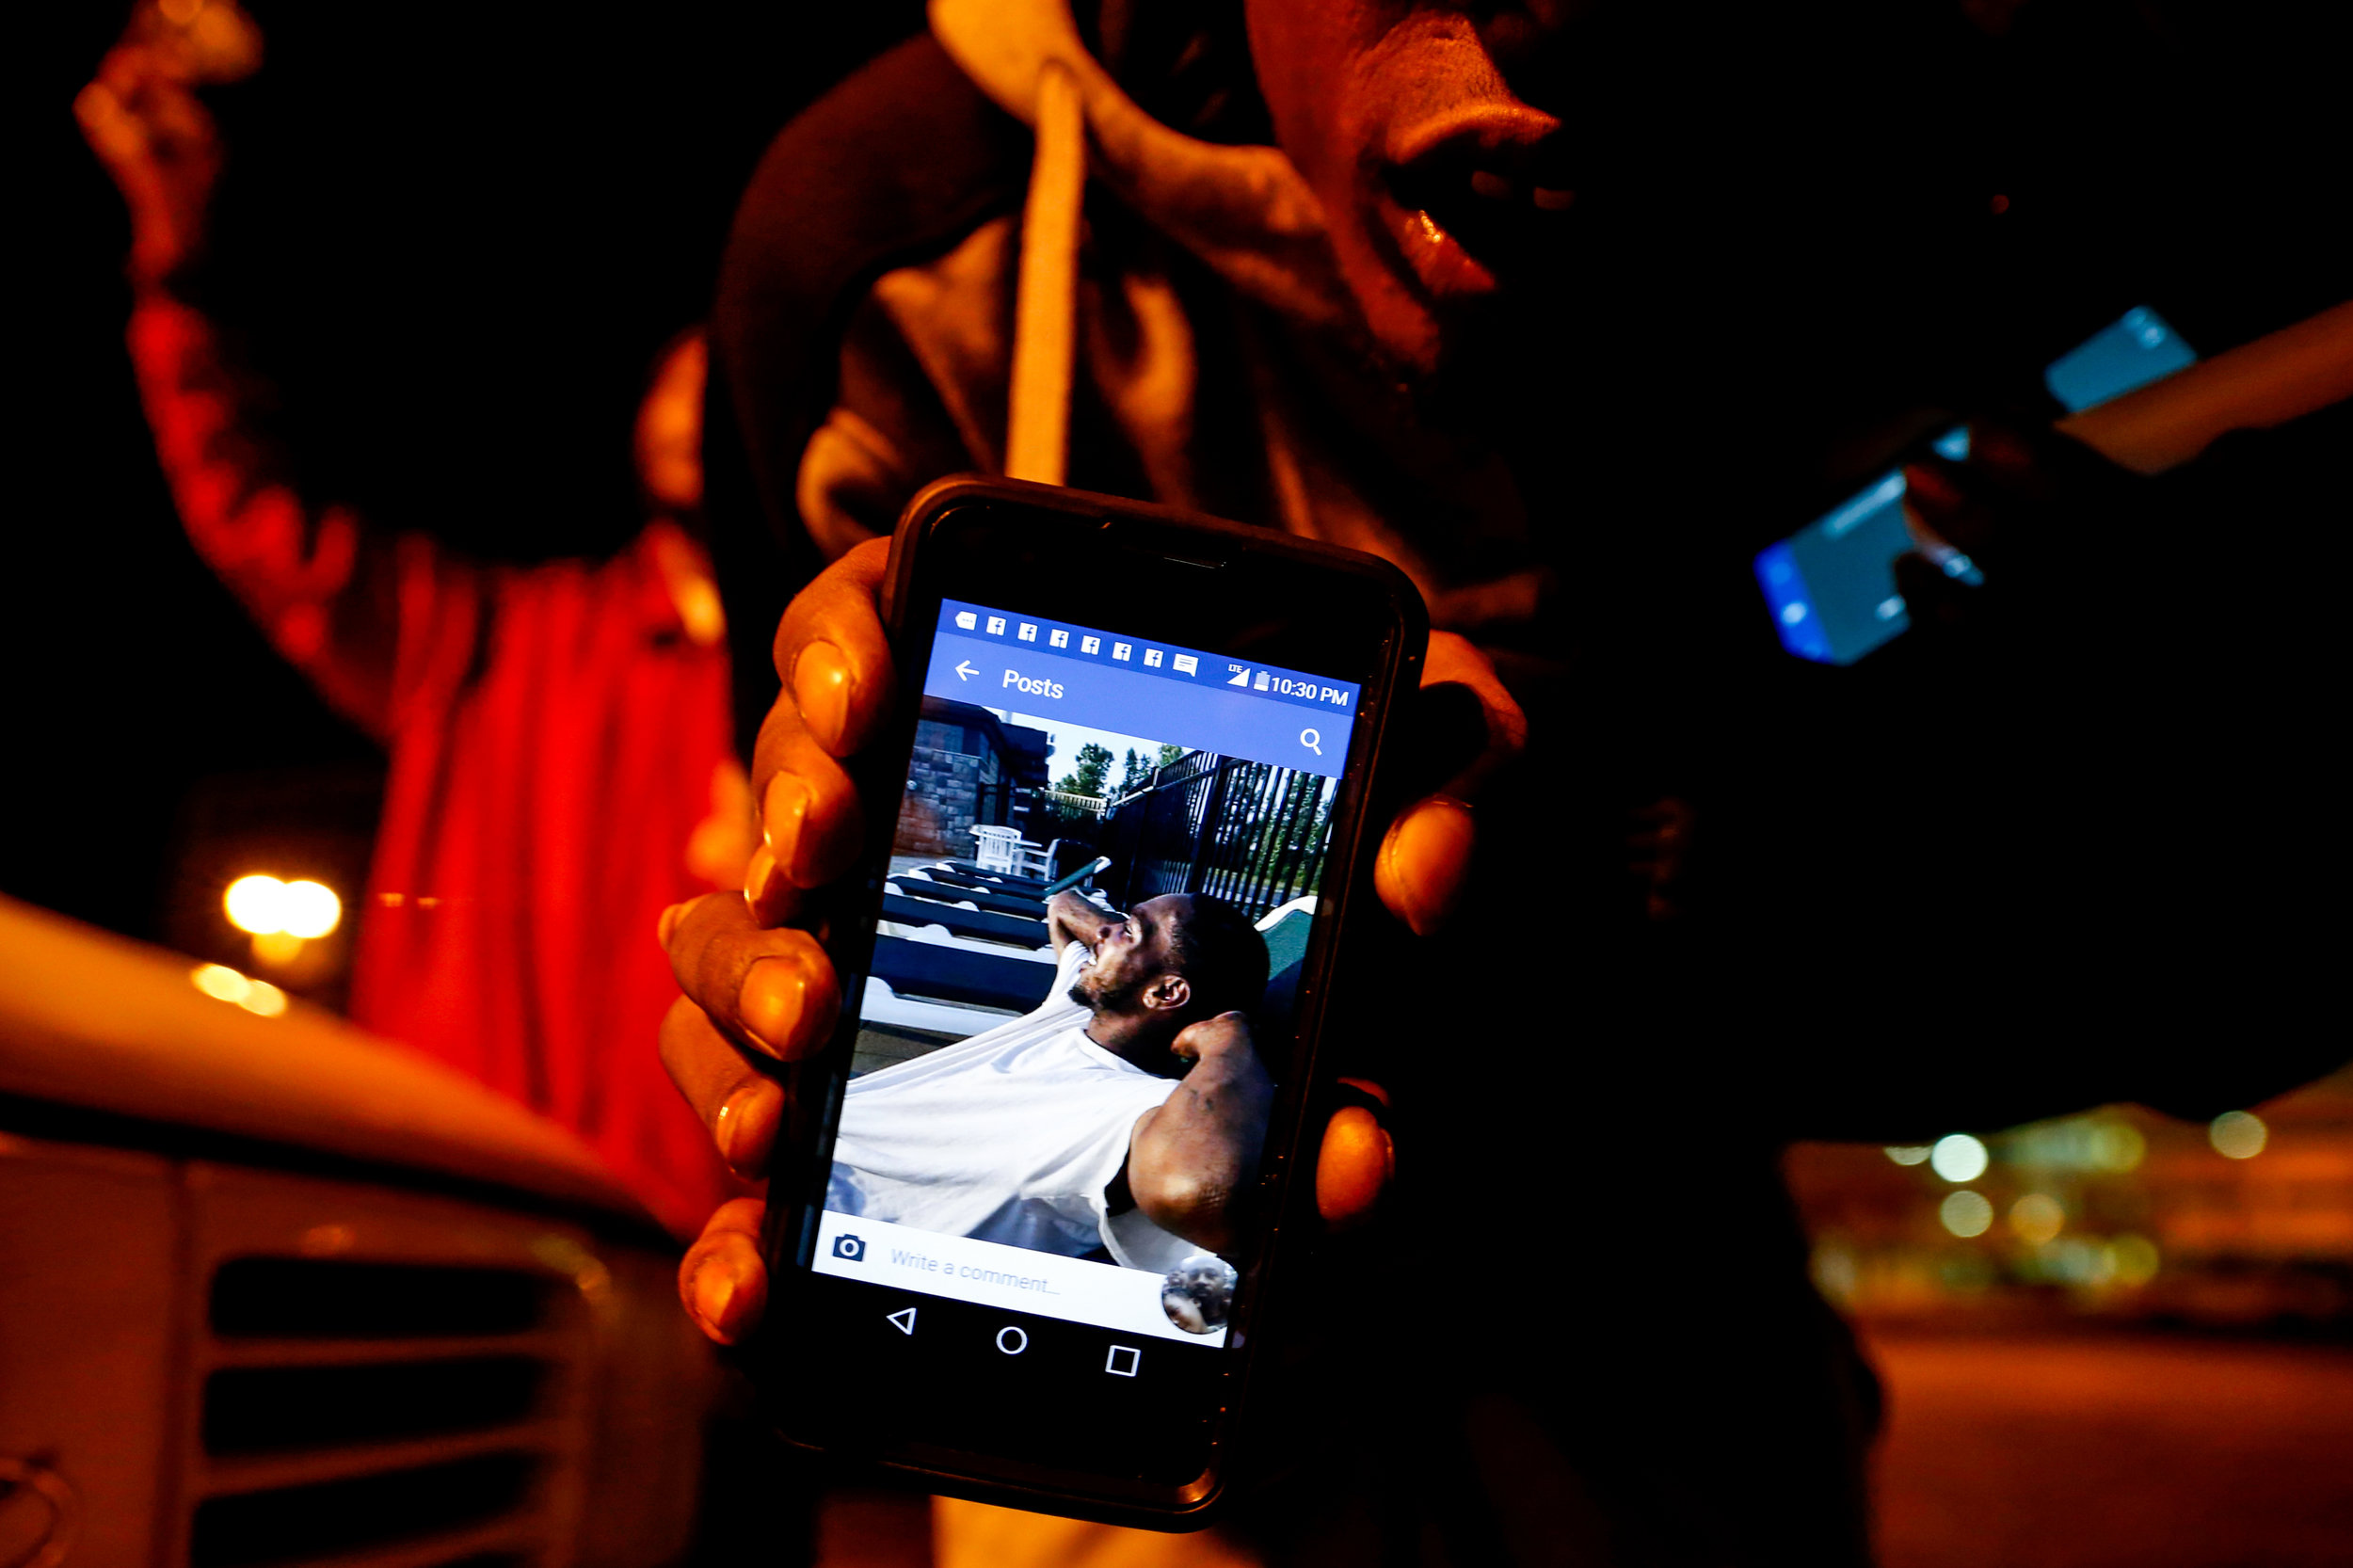 "Chola Williams, brother of Donte Williams, holds up one of his favorite pictures of Donte while gathered at a vigil service on Sunday, Oct. 23, 2016 at the Flat Lot in downtown Flint where he died earlier that day after being shot multiple times. ""That's Donte looking at us right now,"" Williams said as he shows a photo of his brother from his phone."